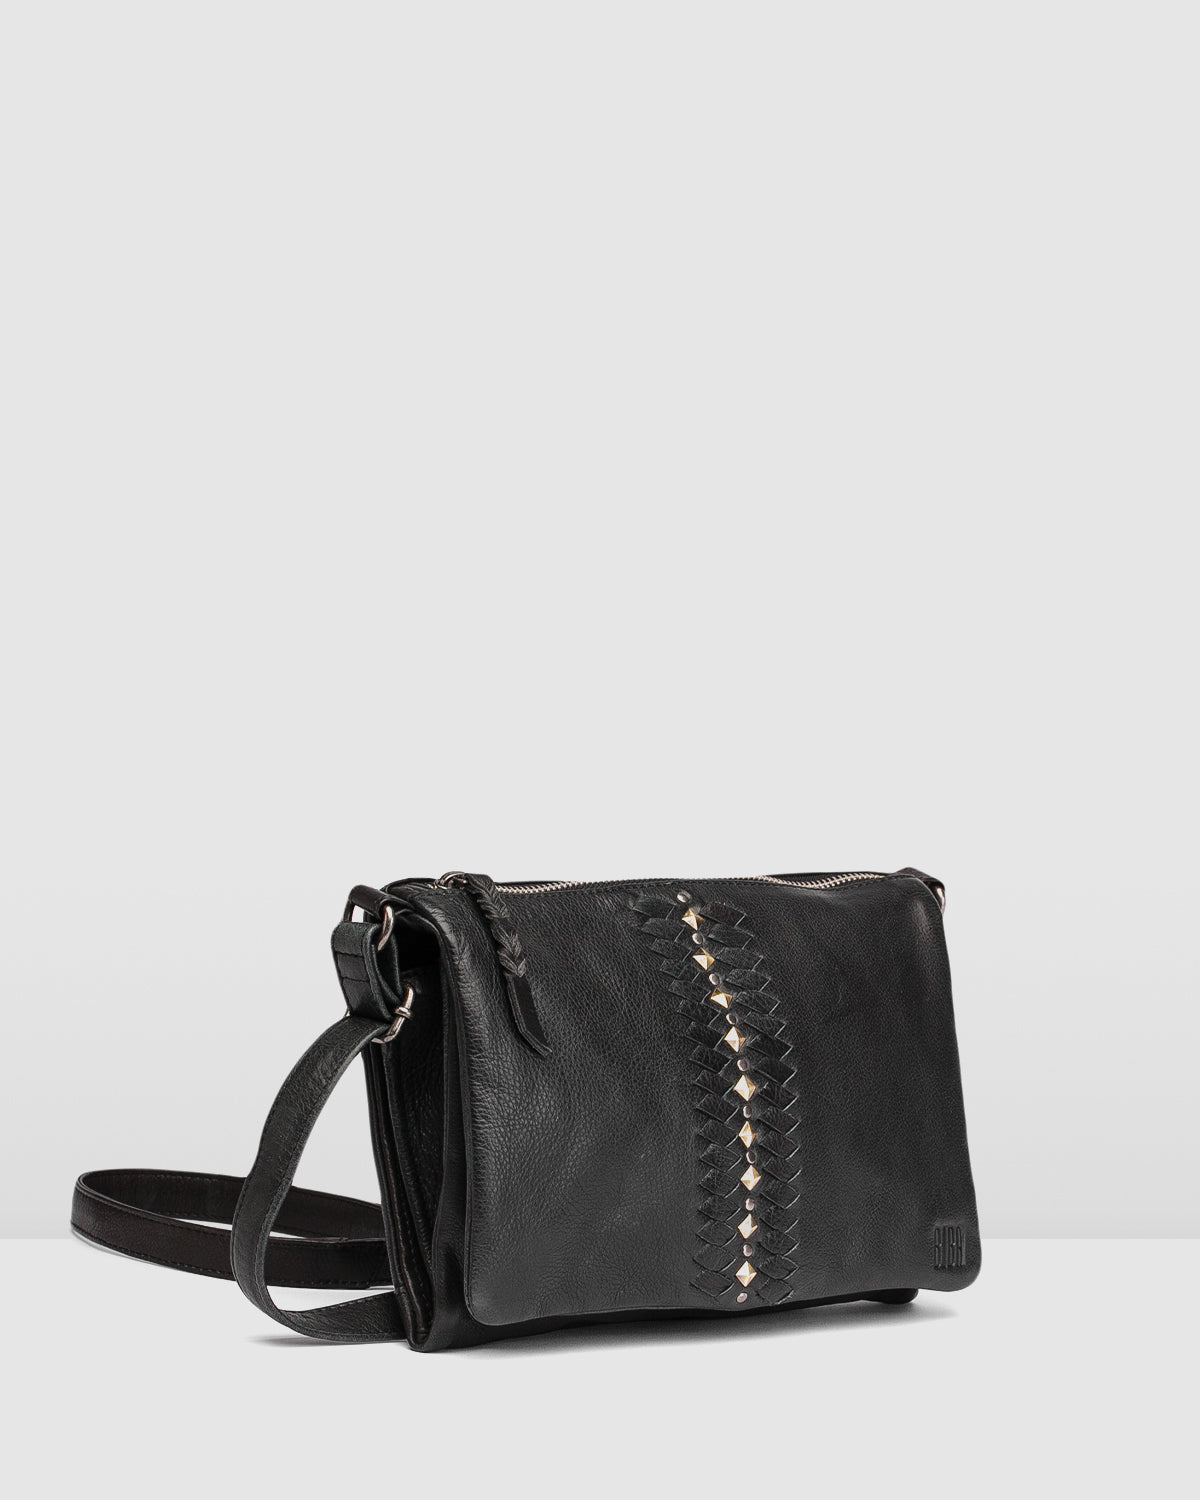 BIBA NASHVILLE ROCK CROSS BODY BAG BLACK LEATHER